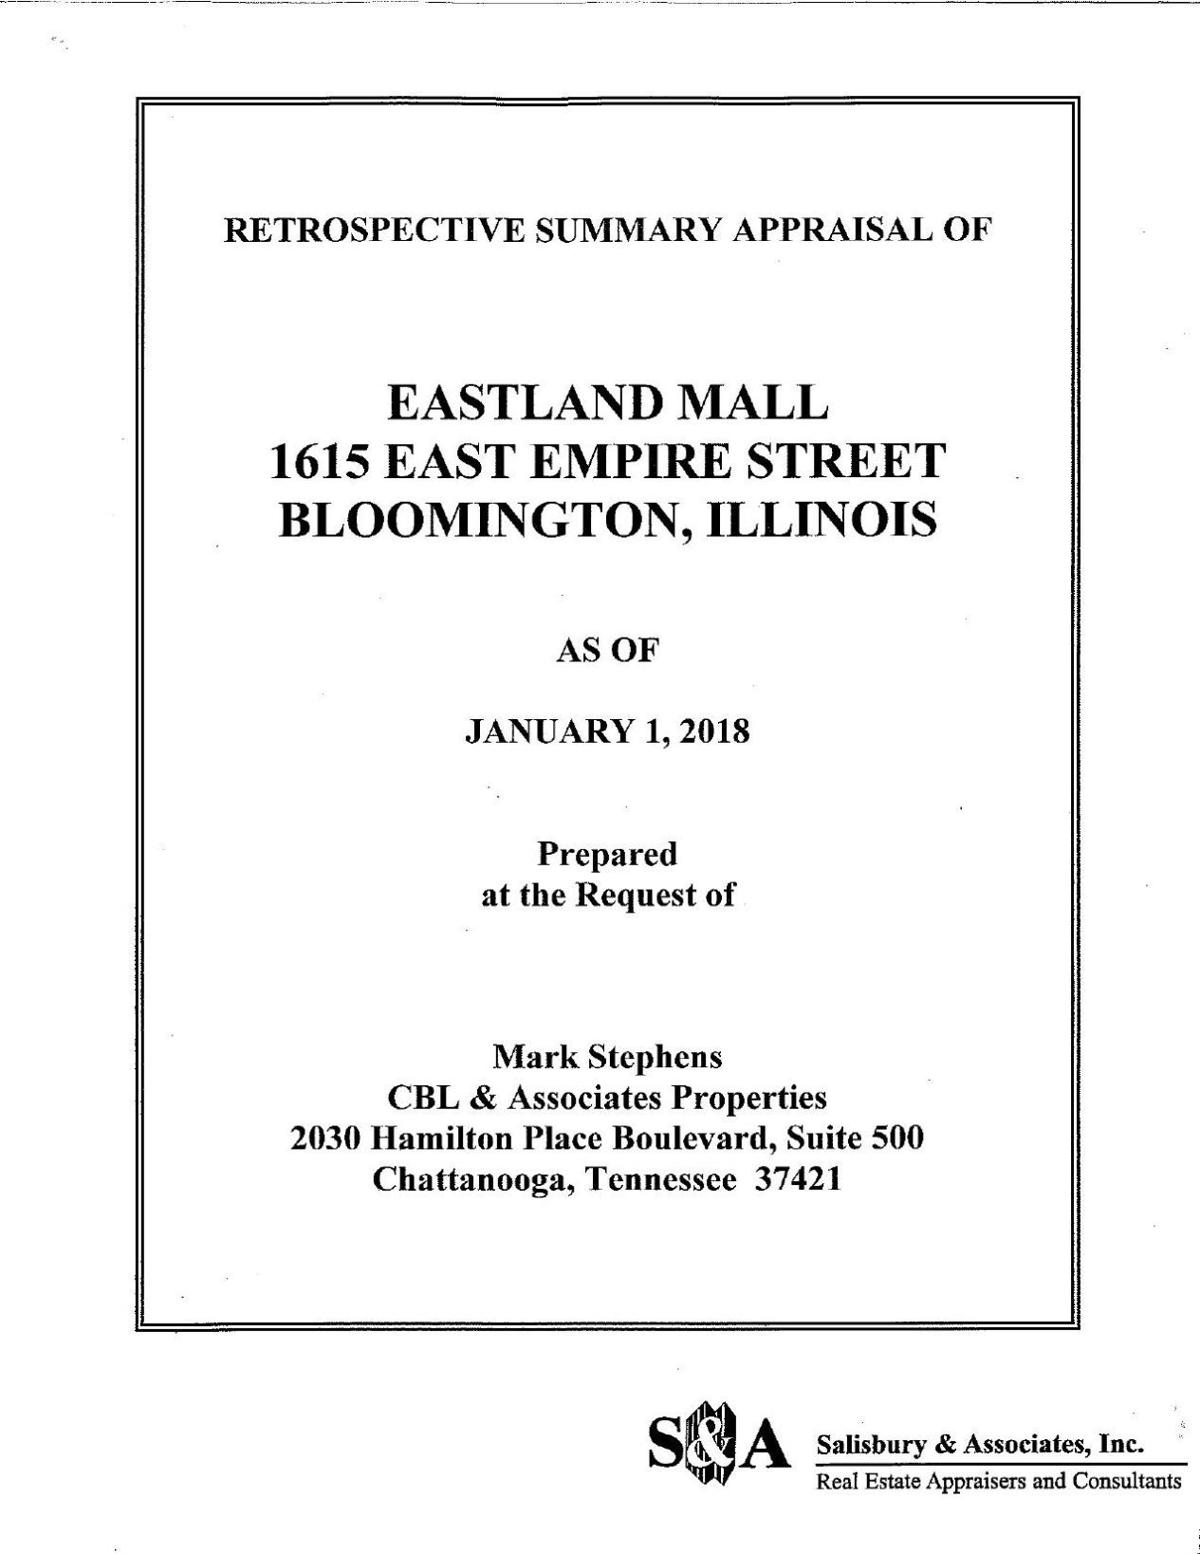 Ownership's appraisal of Eastland Mall